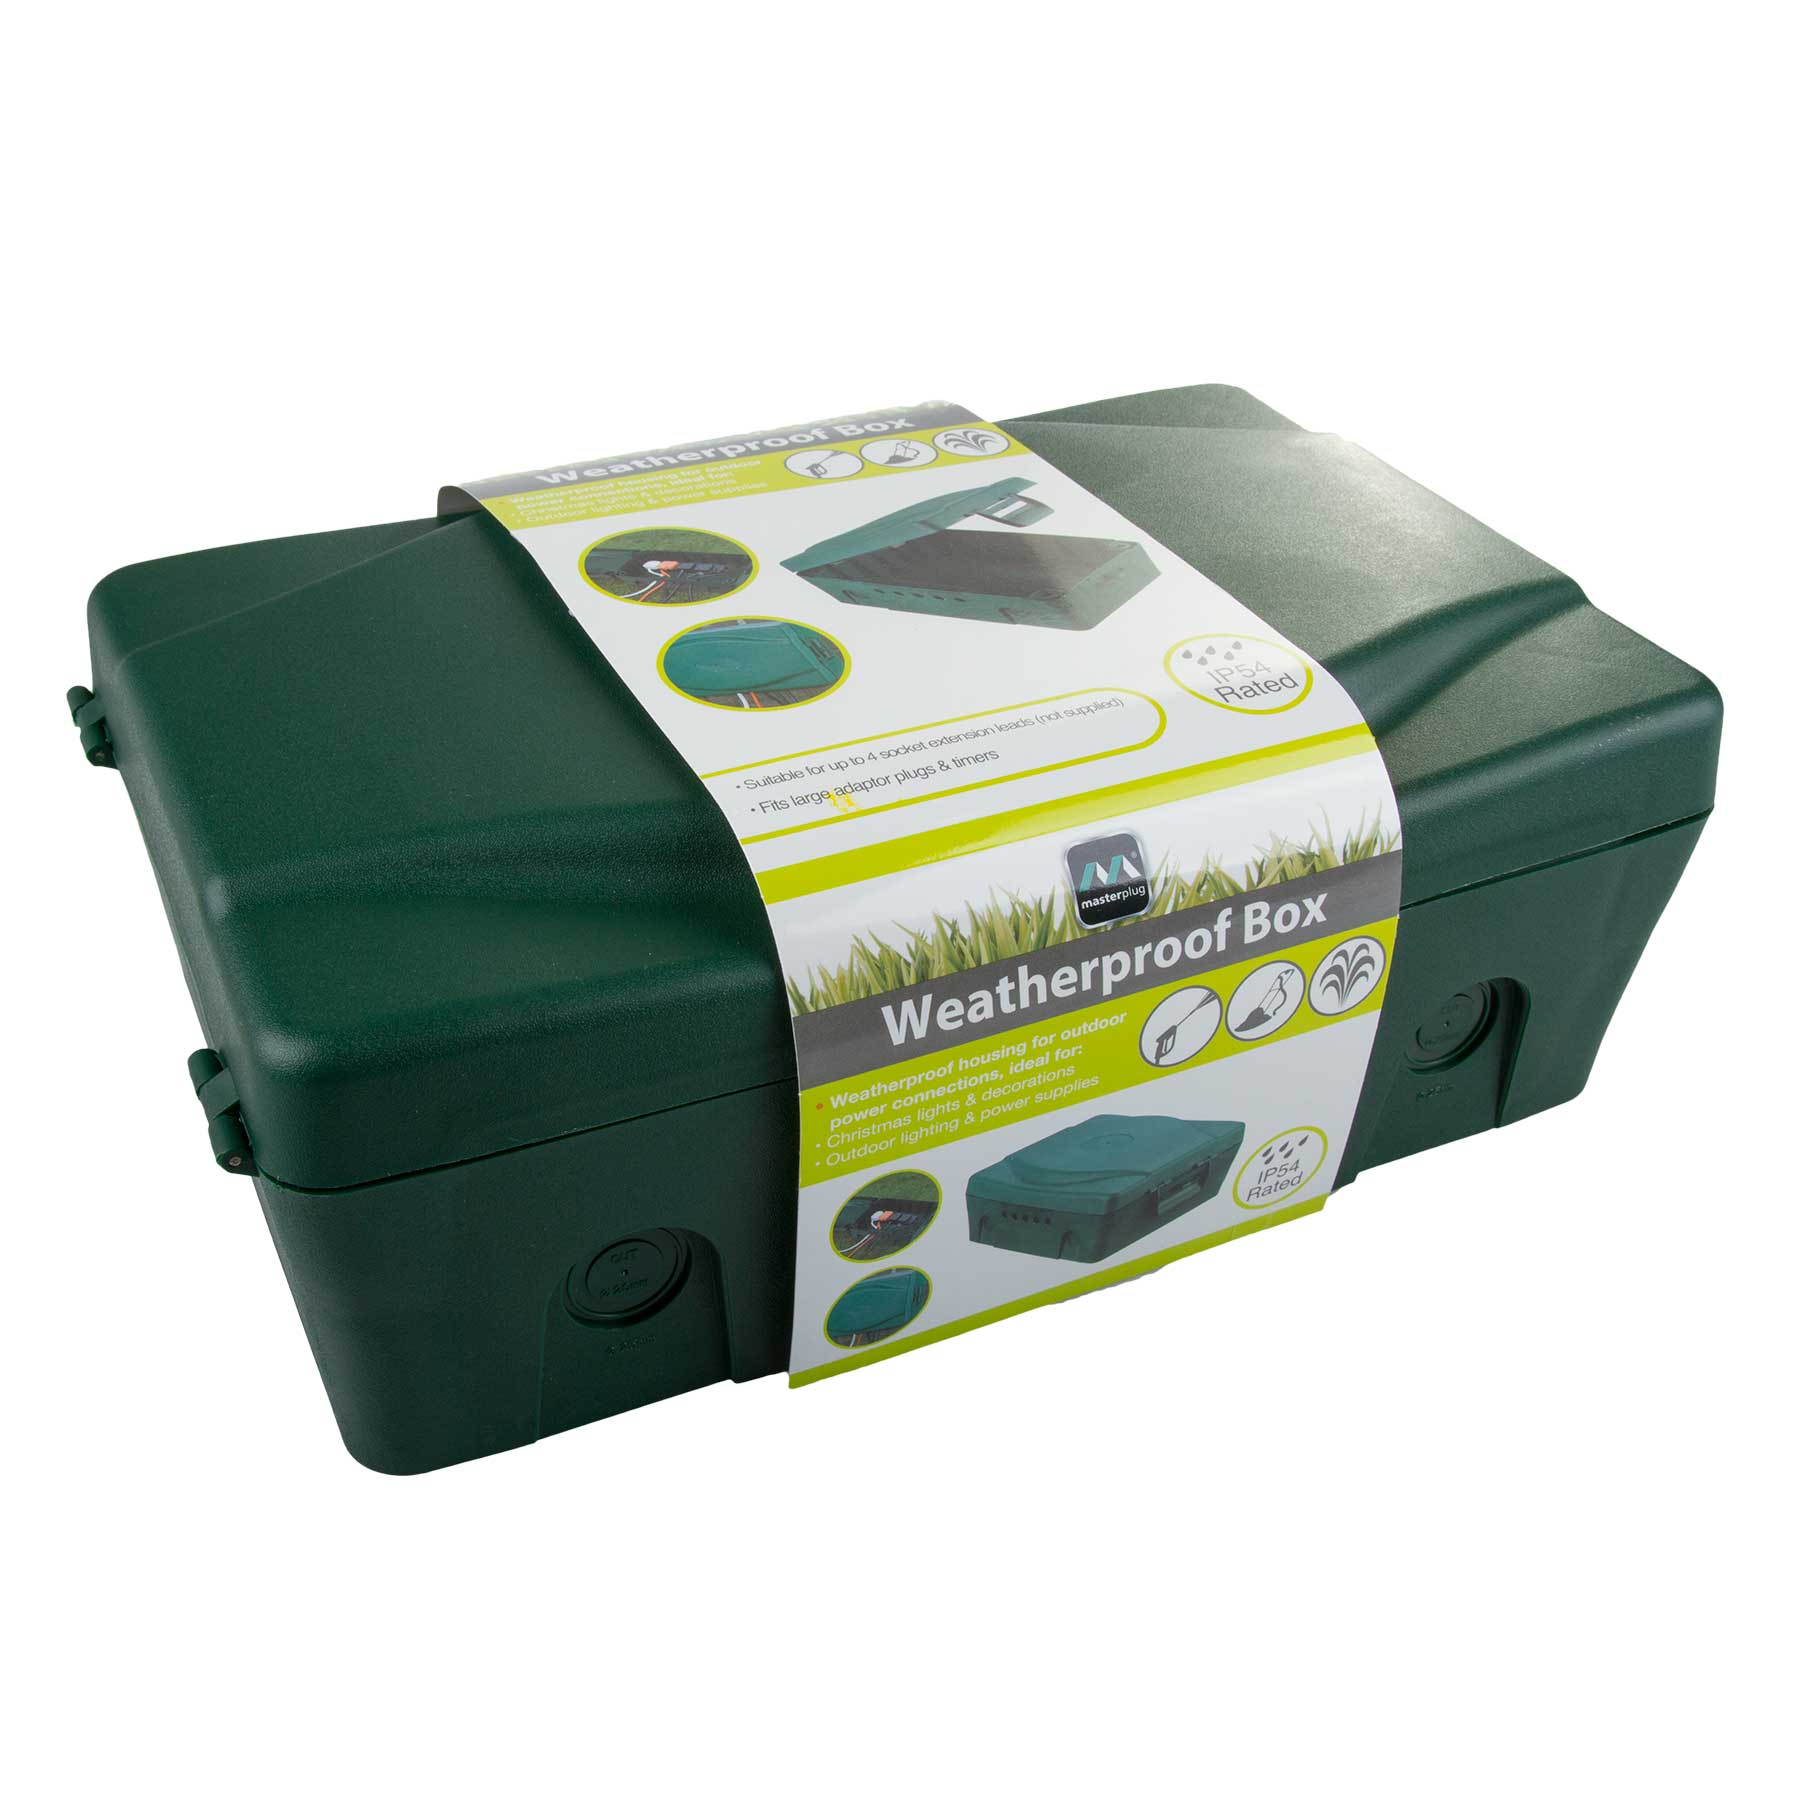 Electric Power Box : Masterplug green weatherproof box for outdoor electrical